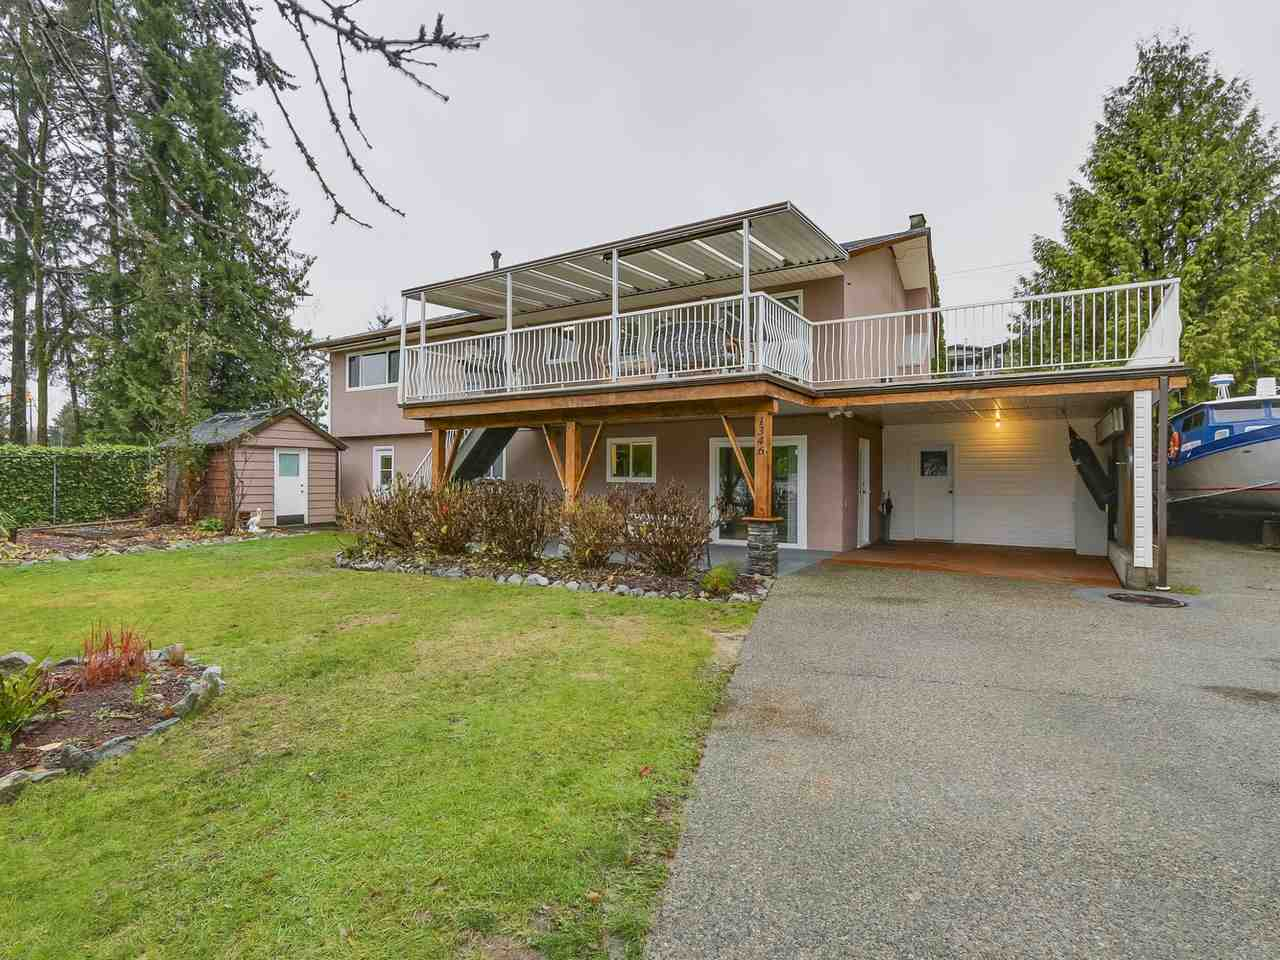 Beautiful 2-level house situated on a private 10,000+ sf lot in Hockaday, Coquitlam. On upstairs, spacious 3 bedrooms with 2 baths. Hardwood throughout living area and a brick decorated gas fireplace, large kitchen with slider out to 600+ sf covered deck. One downstairs, fully finished 2 bedrooms with 1 full bath, full kitchen with SS appliances, gas fireplace, huge living room, 2 separate entrances. A newer hot water tank and appliances. Walking distance to park, schools, skytrain and transit. Schools: K-5 Nestor Elementary, 6-8 Maple Creek Middle, 9-12 Pinetree or Dr. Charles Best Secondary. 1st showing open house 2-4pm Sat. & Sun. Dec 2nd & 3rd. Offers if any to be emailed to the listing agent by 5pm Monday, Dec 4th, 2017.